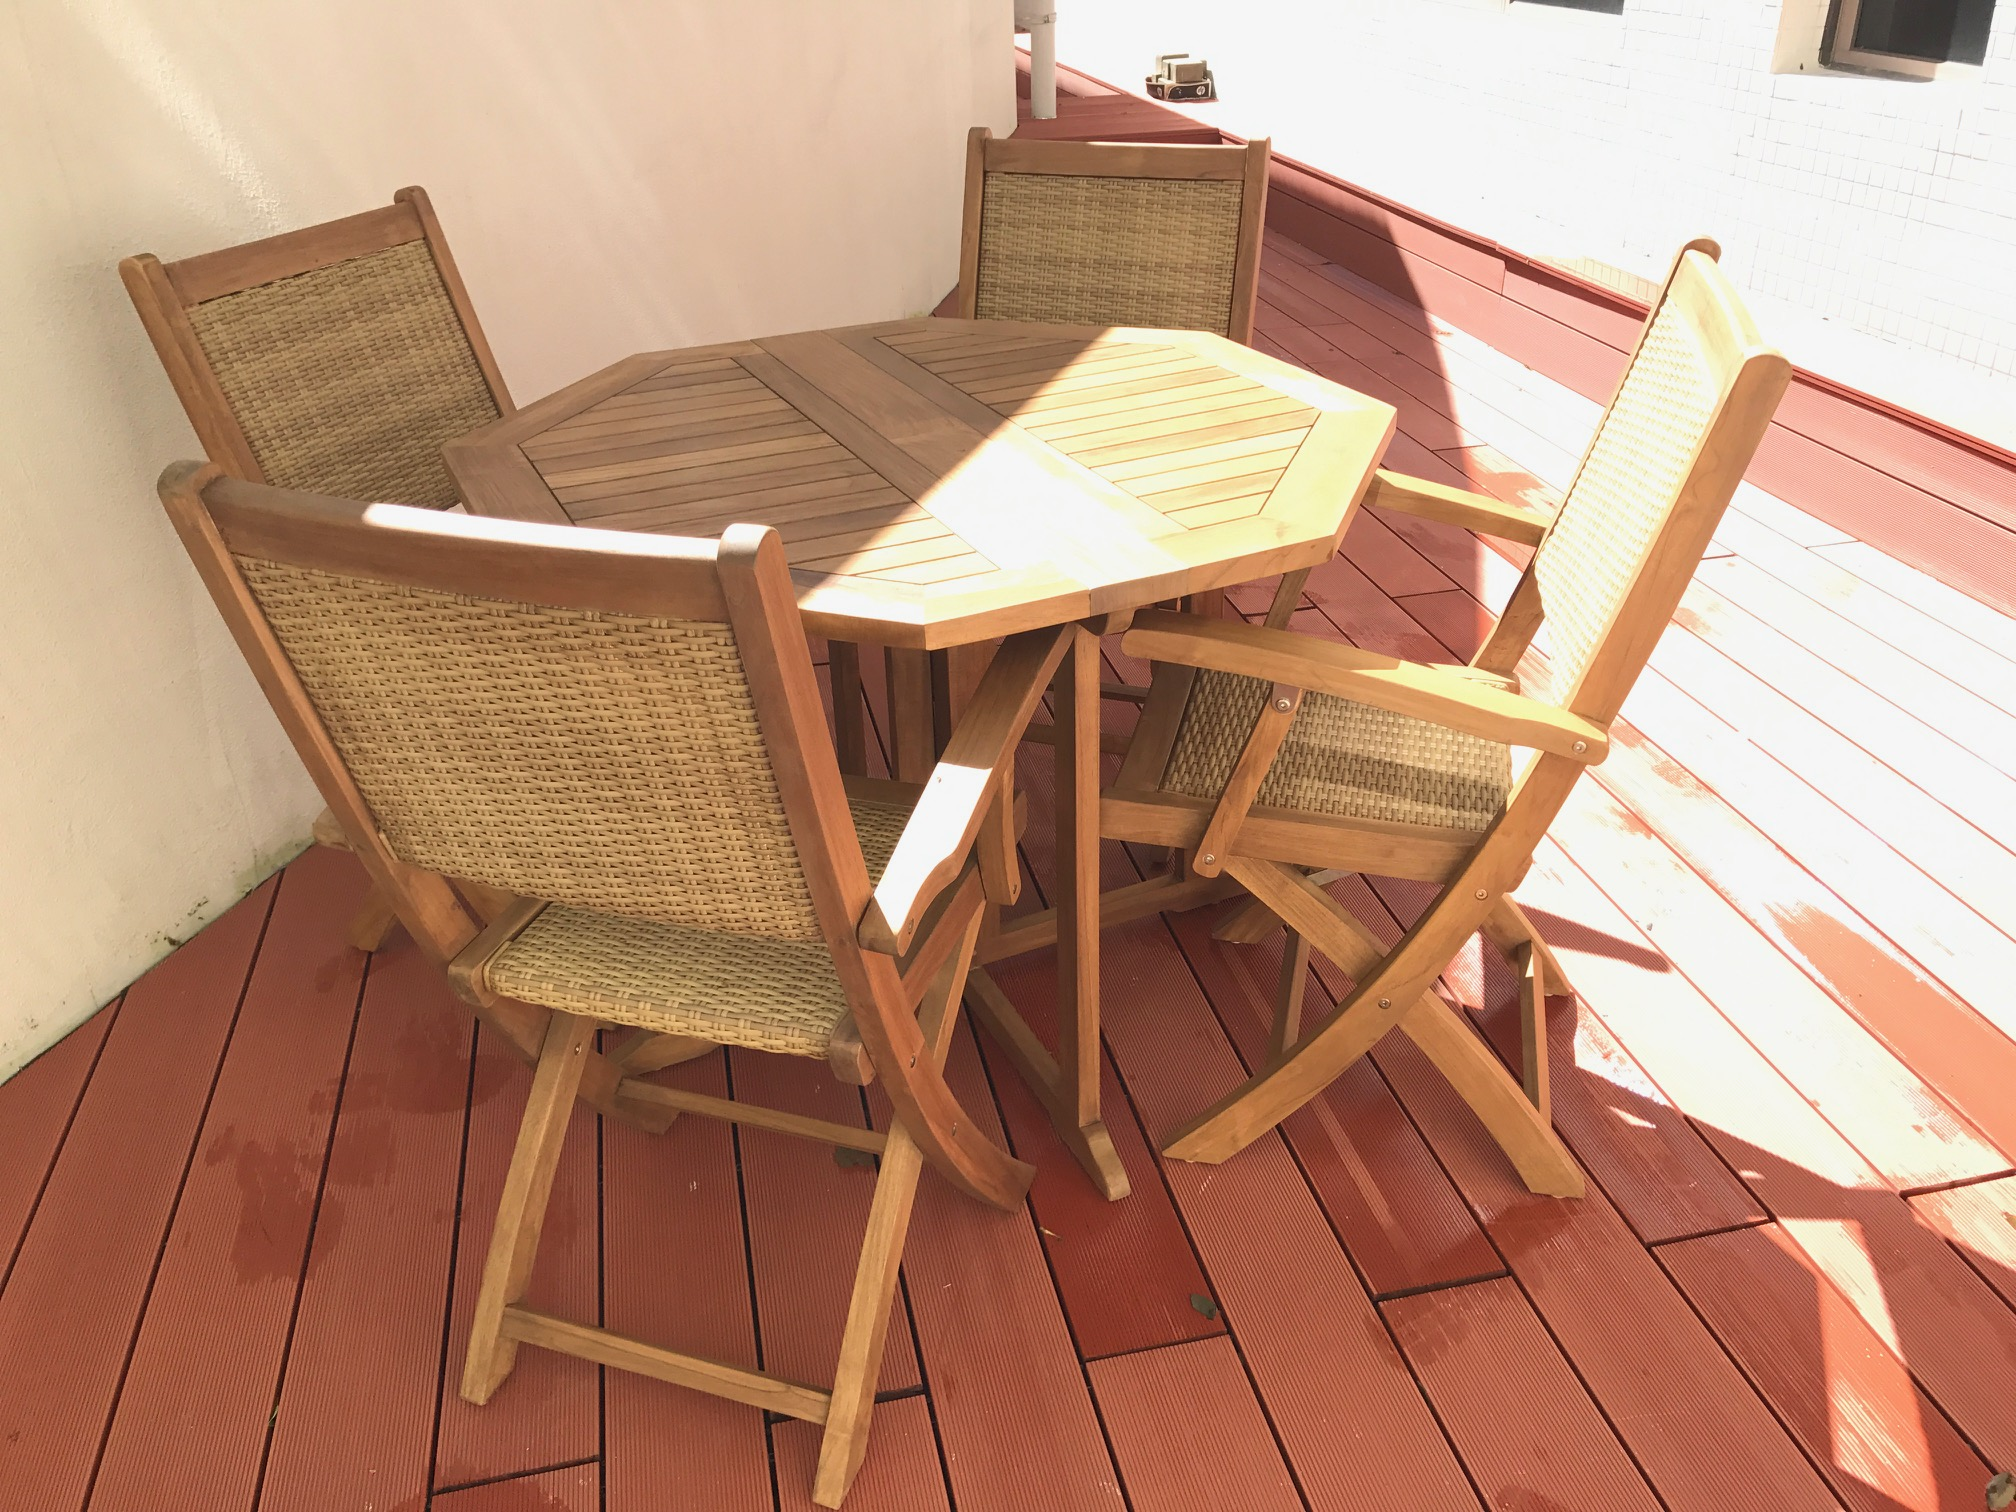 Grade a teak wood oct butterfly folding table sets